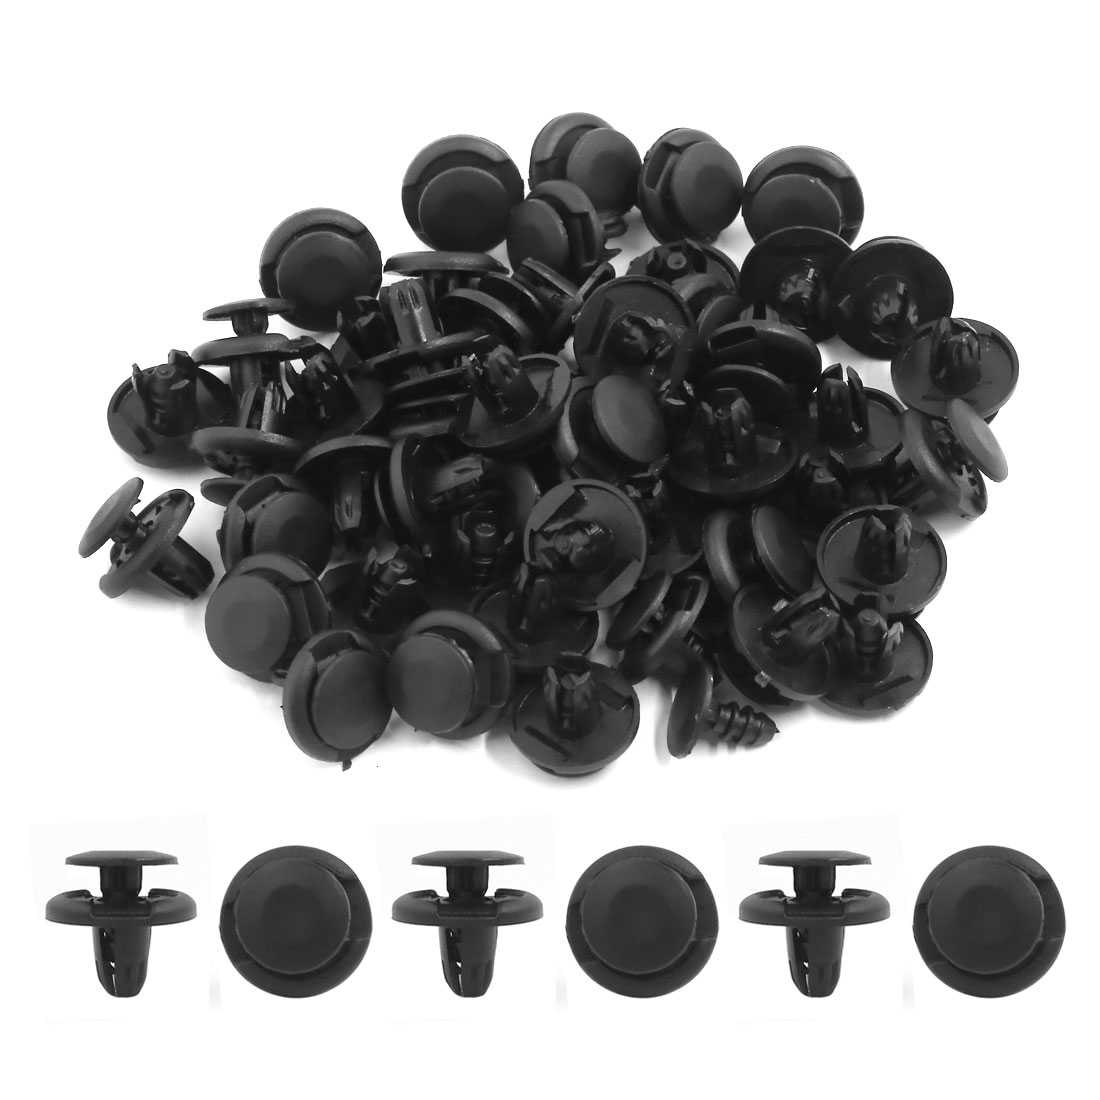 50pcs 8mm Hole 20mm Head Plastic Rivets Fastener Push Clips Black for Car Fender